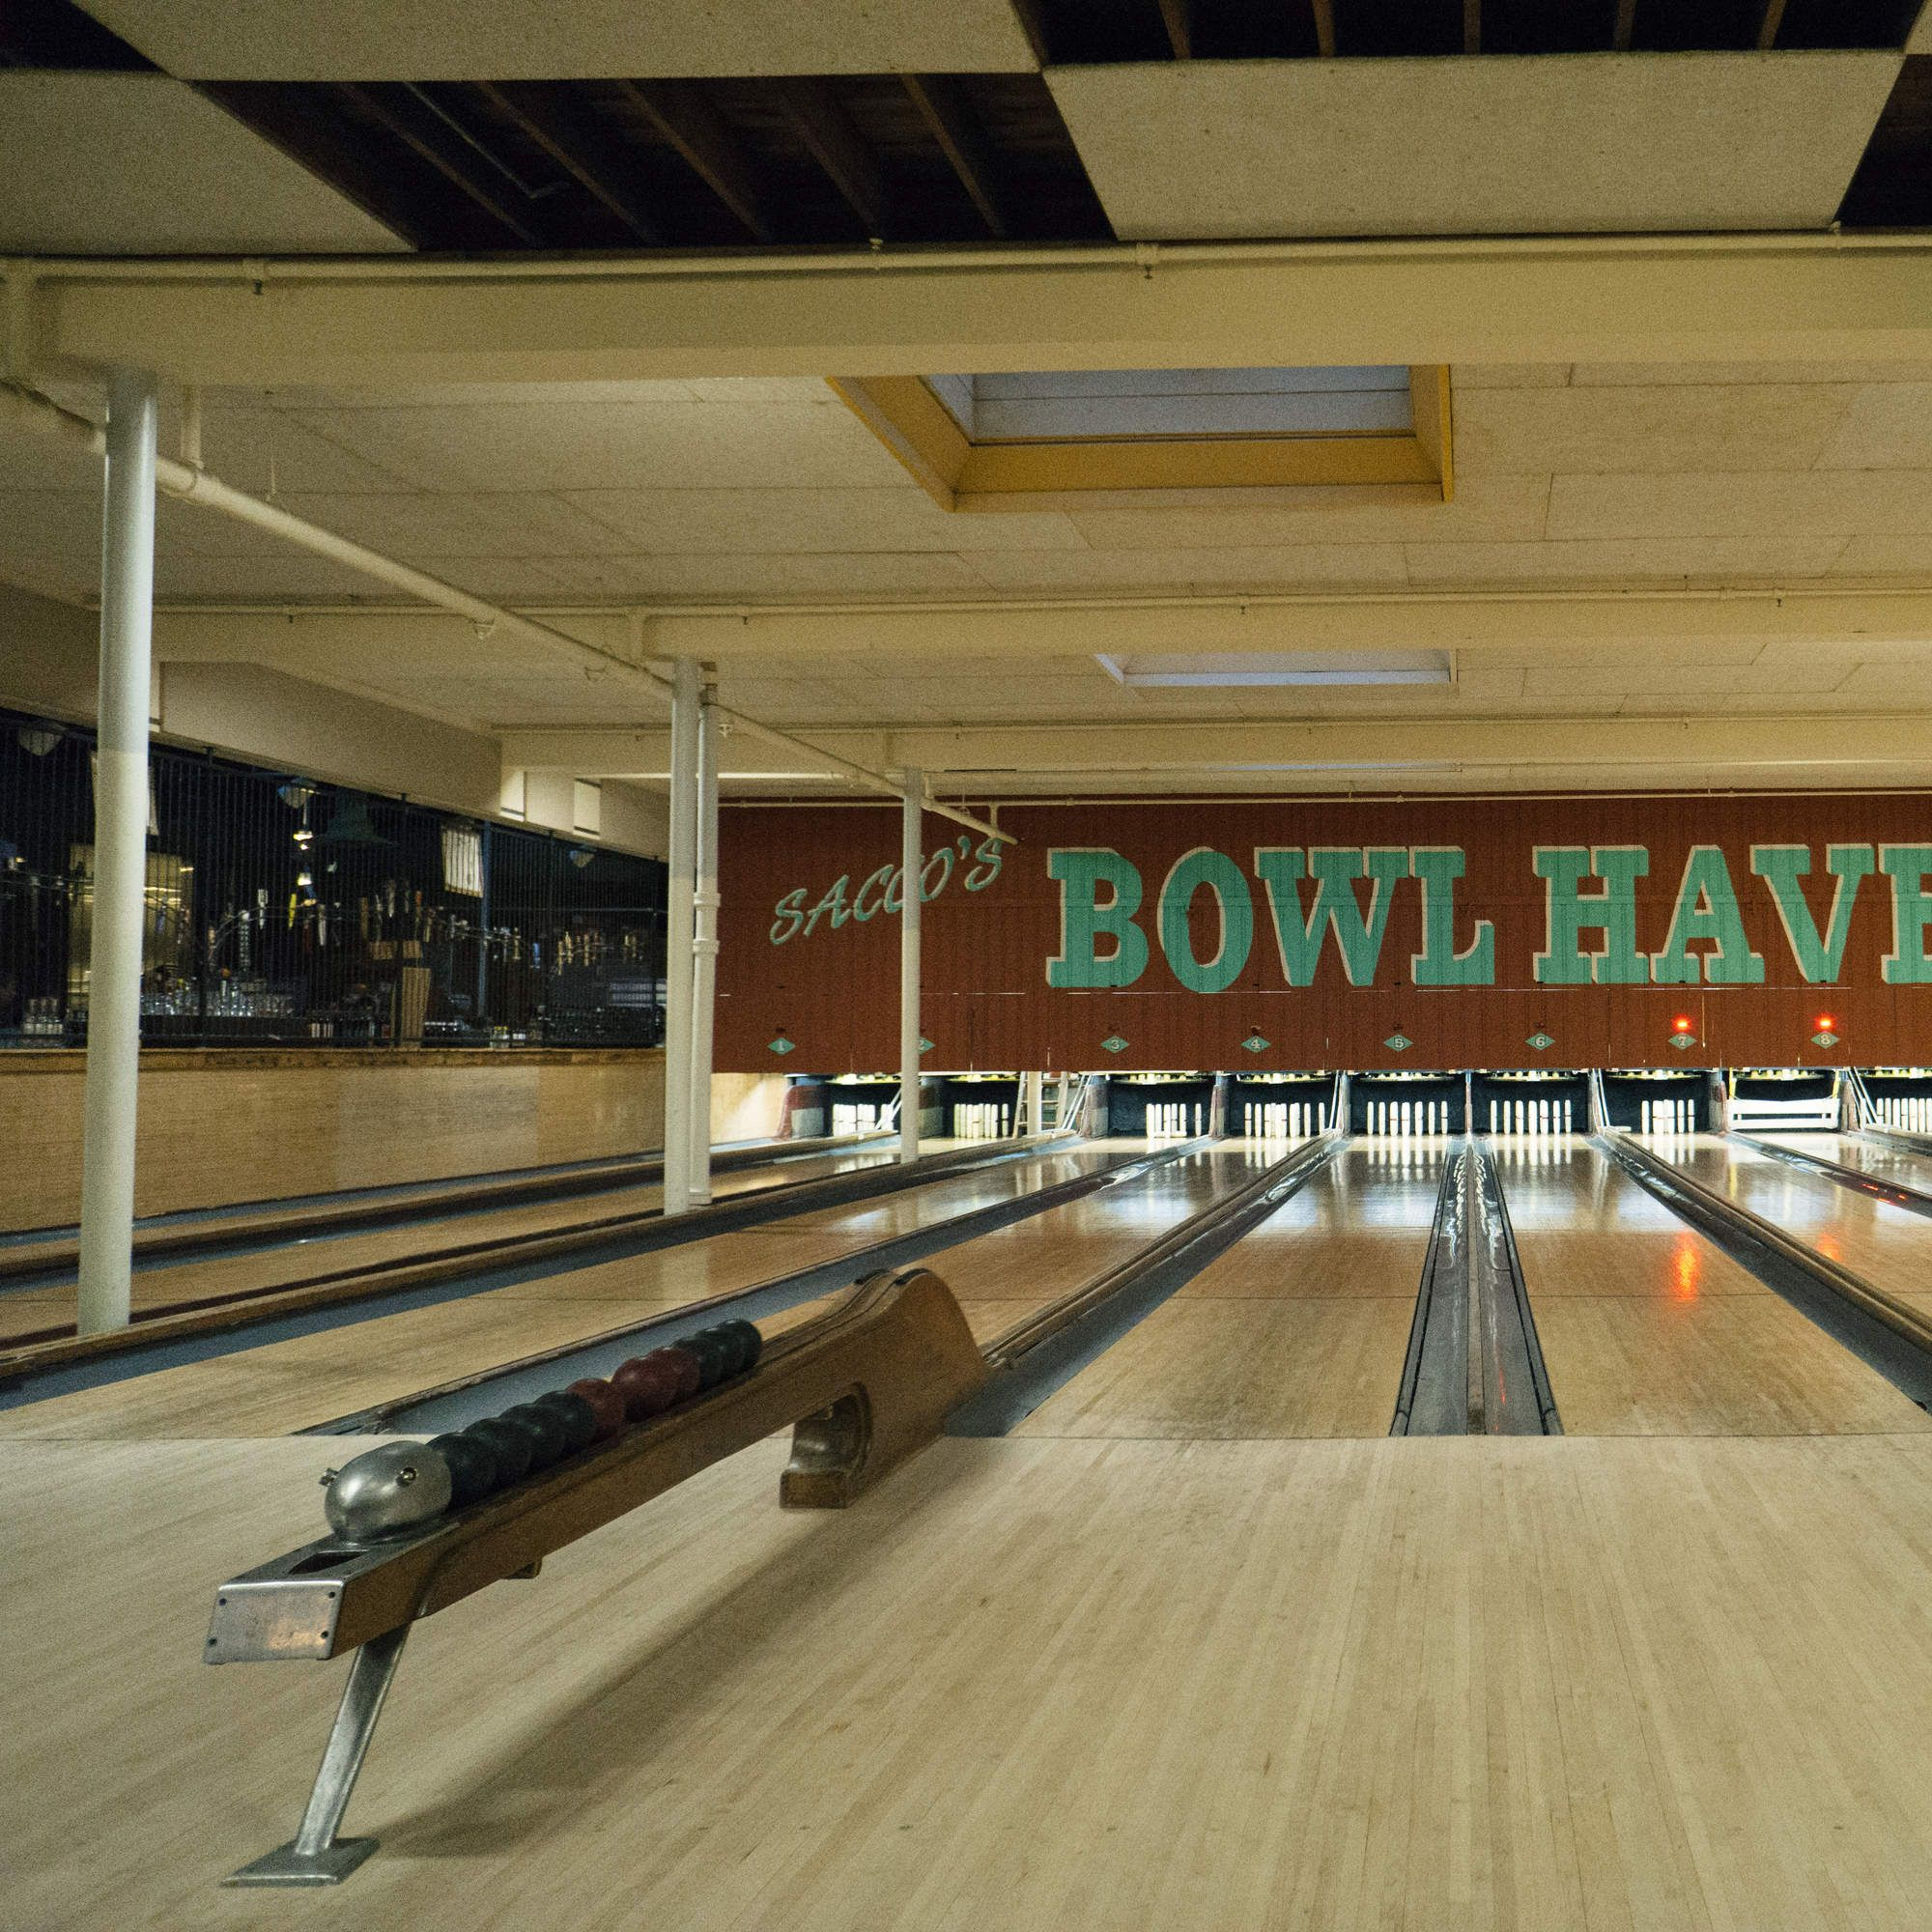 Actually Cool Things To Do In Boston With Images Boston Things To Do Candlepin Bowling Living In Boston